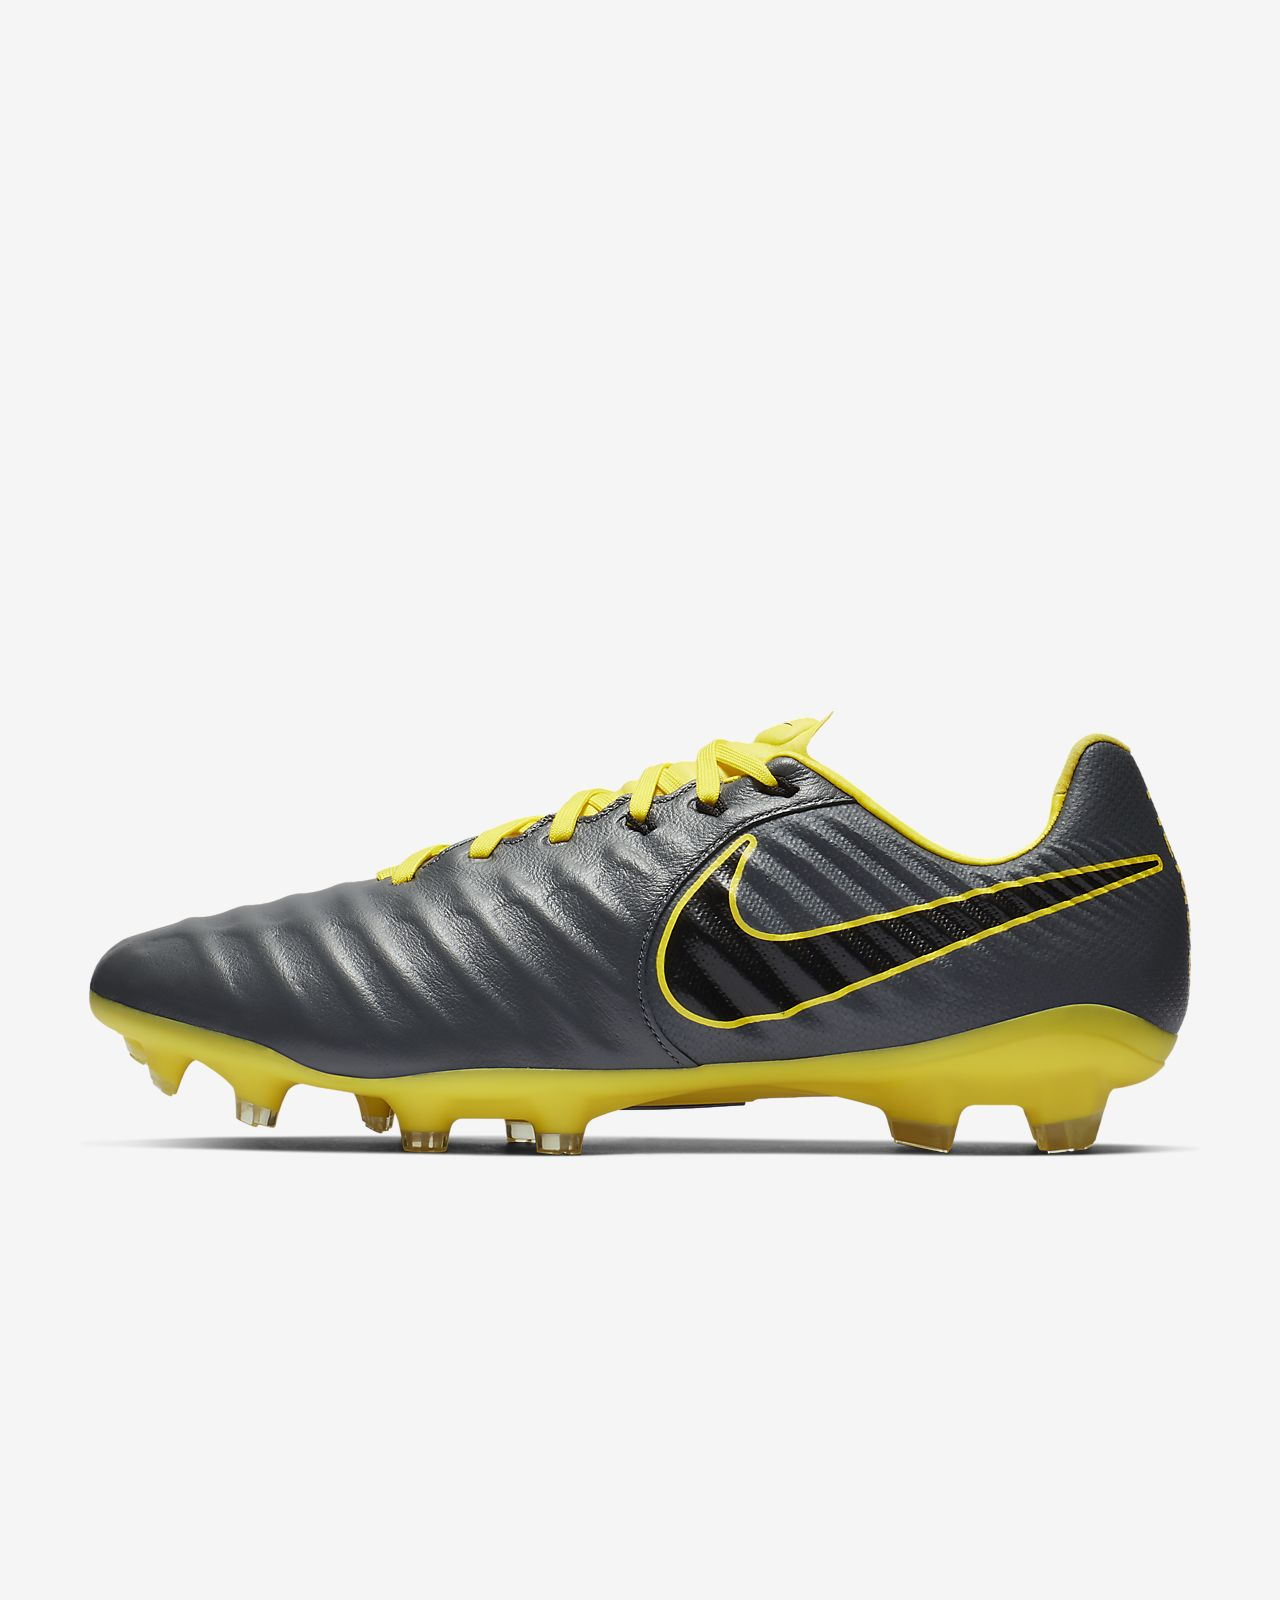 6670994f32b Nike Legend 7 Pro FG Firm-Ground Football Boot. Nike.com GB